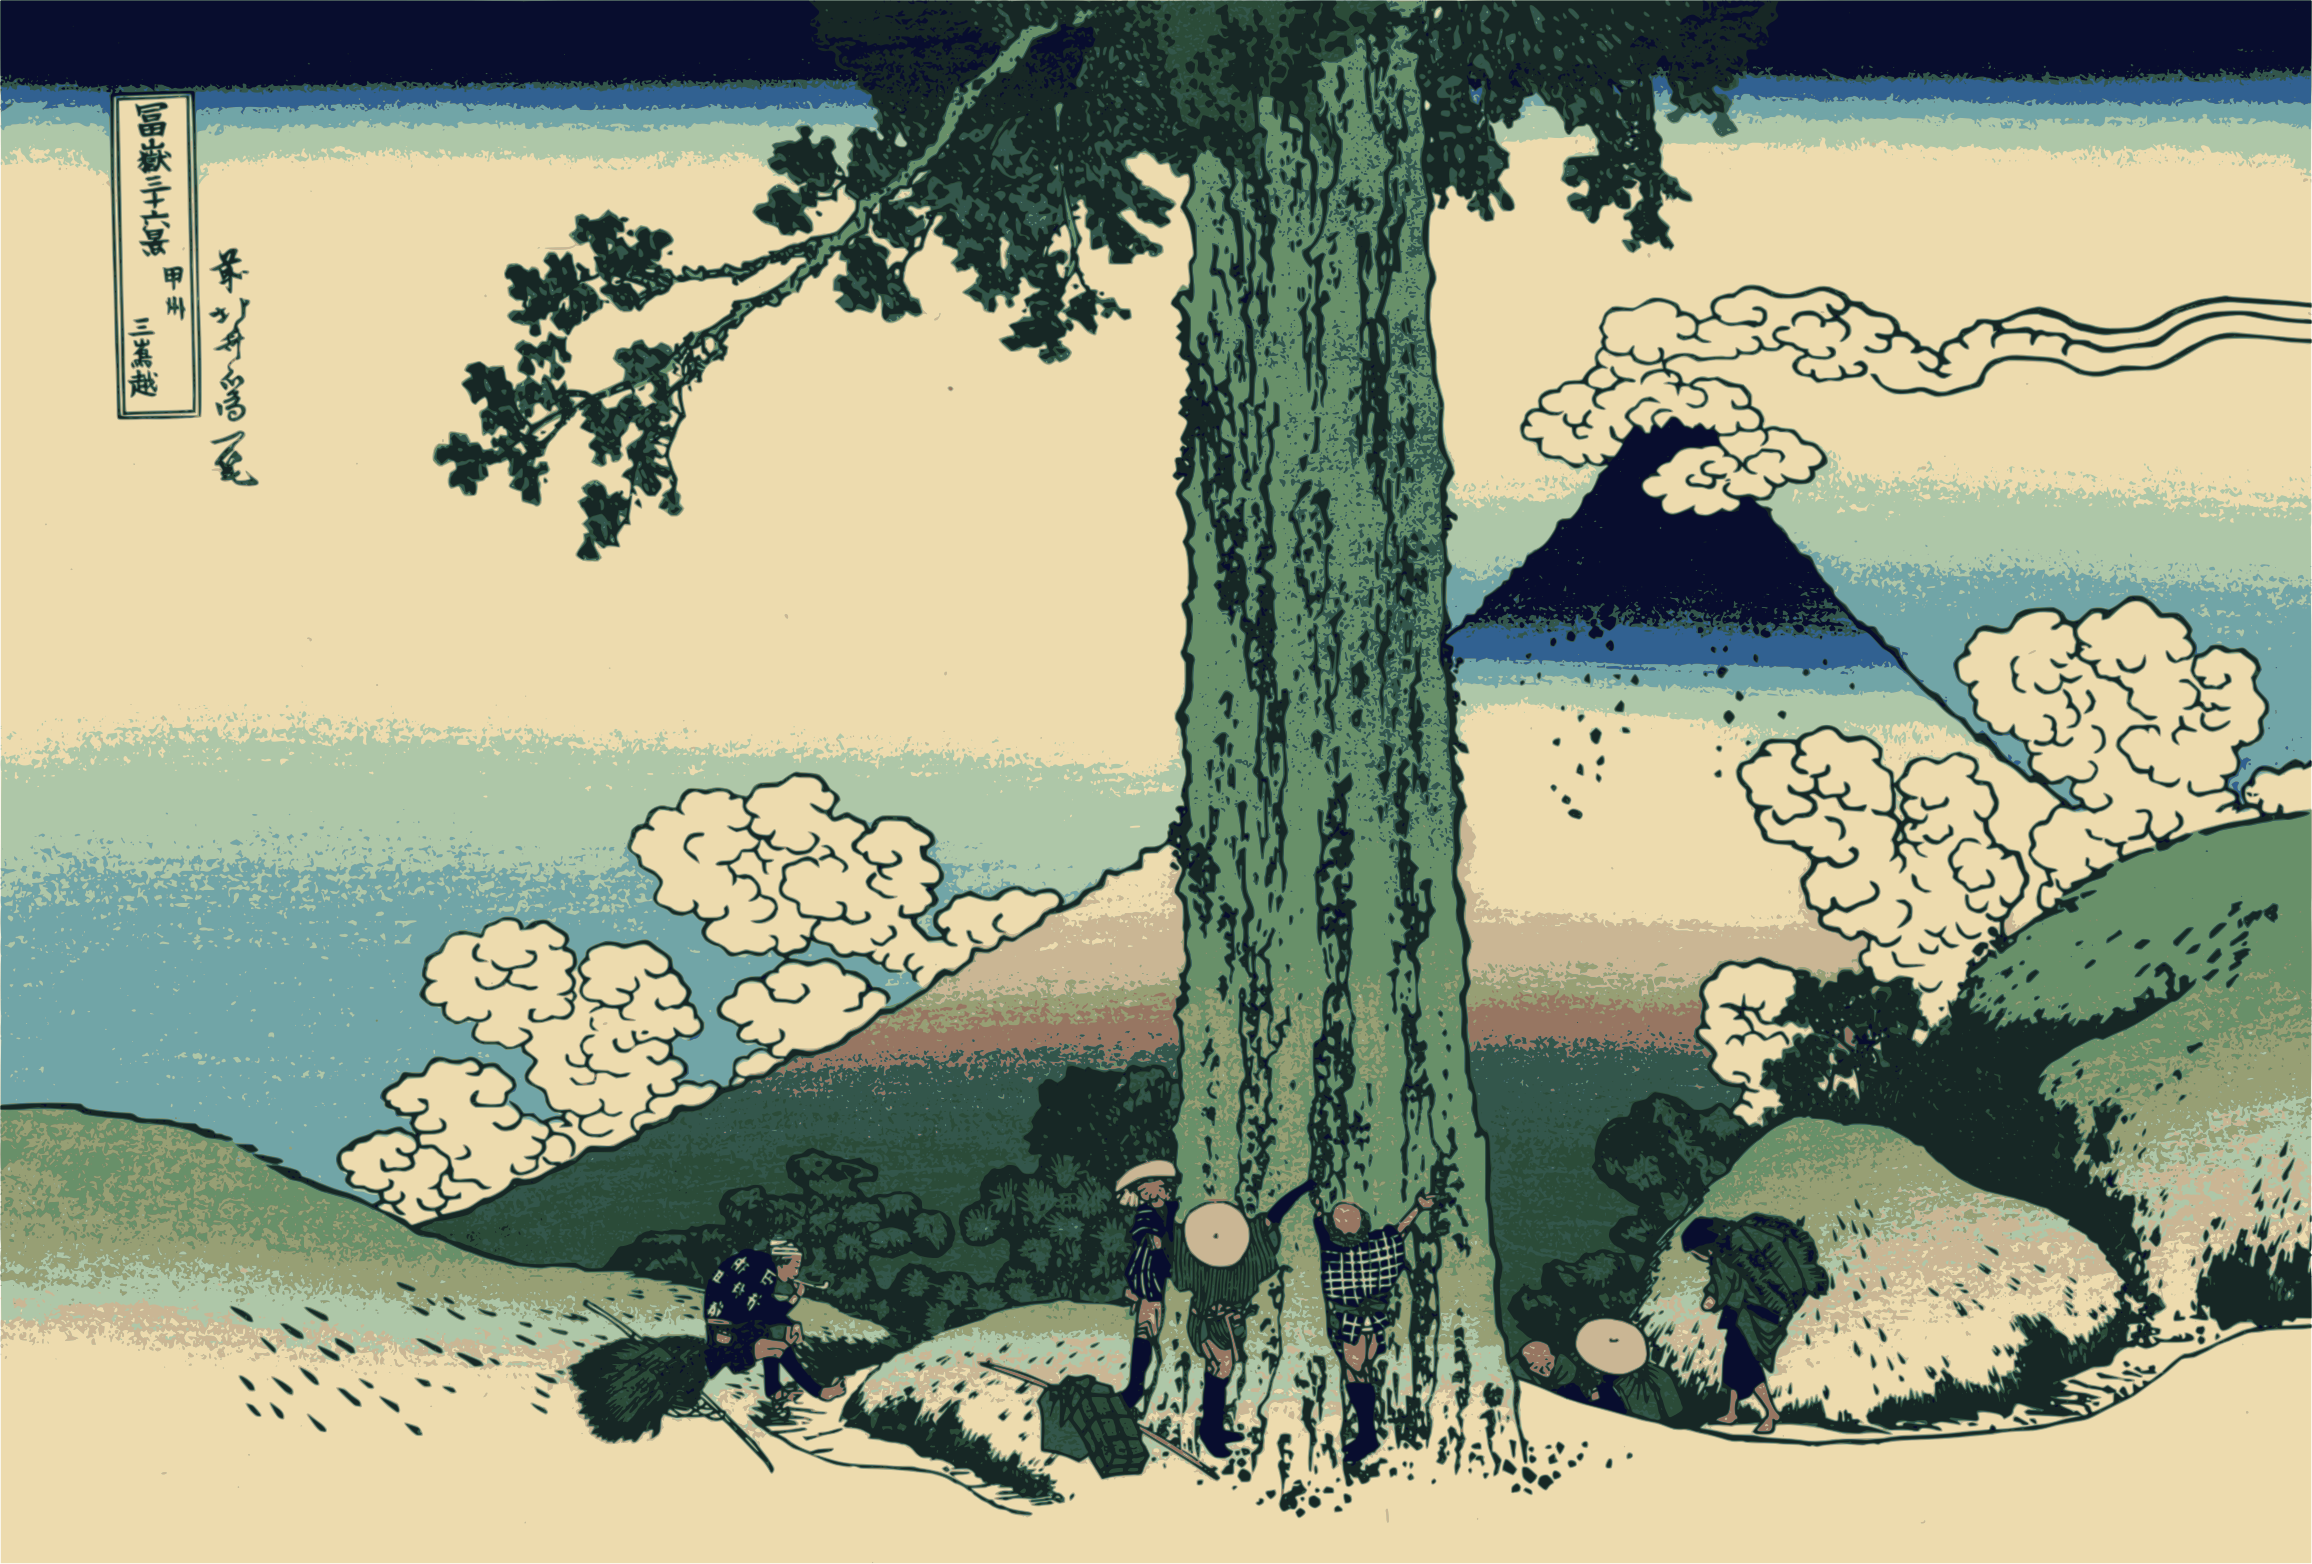 Hokusai-Mount Fuji-36-Views-29 by yamachem2